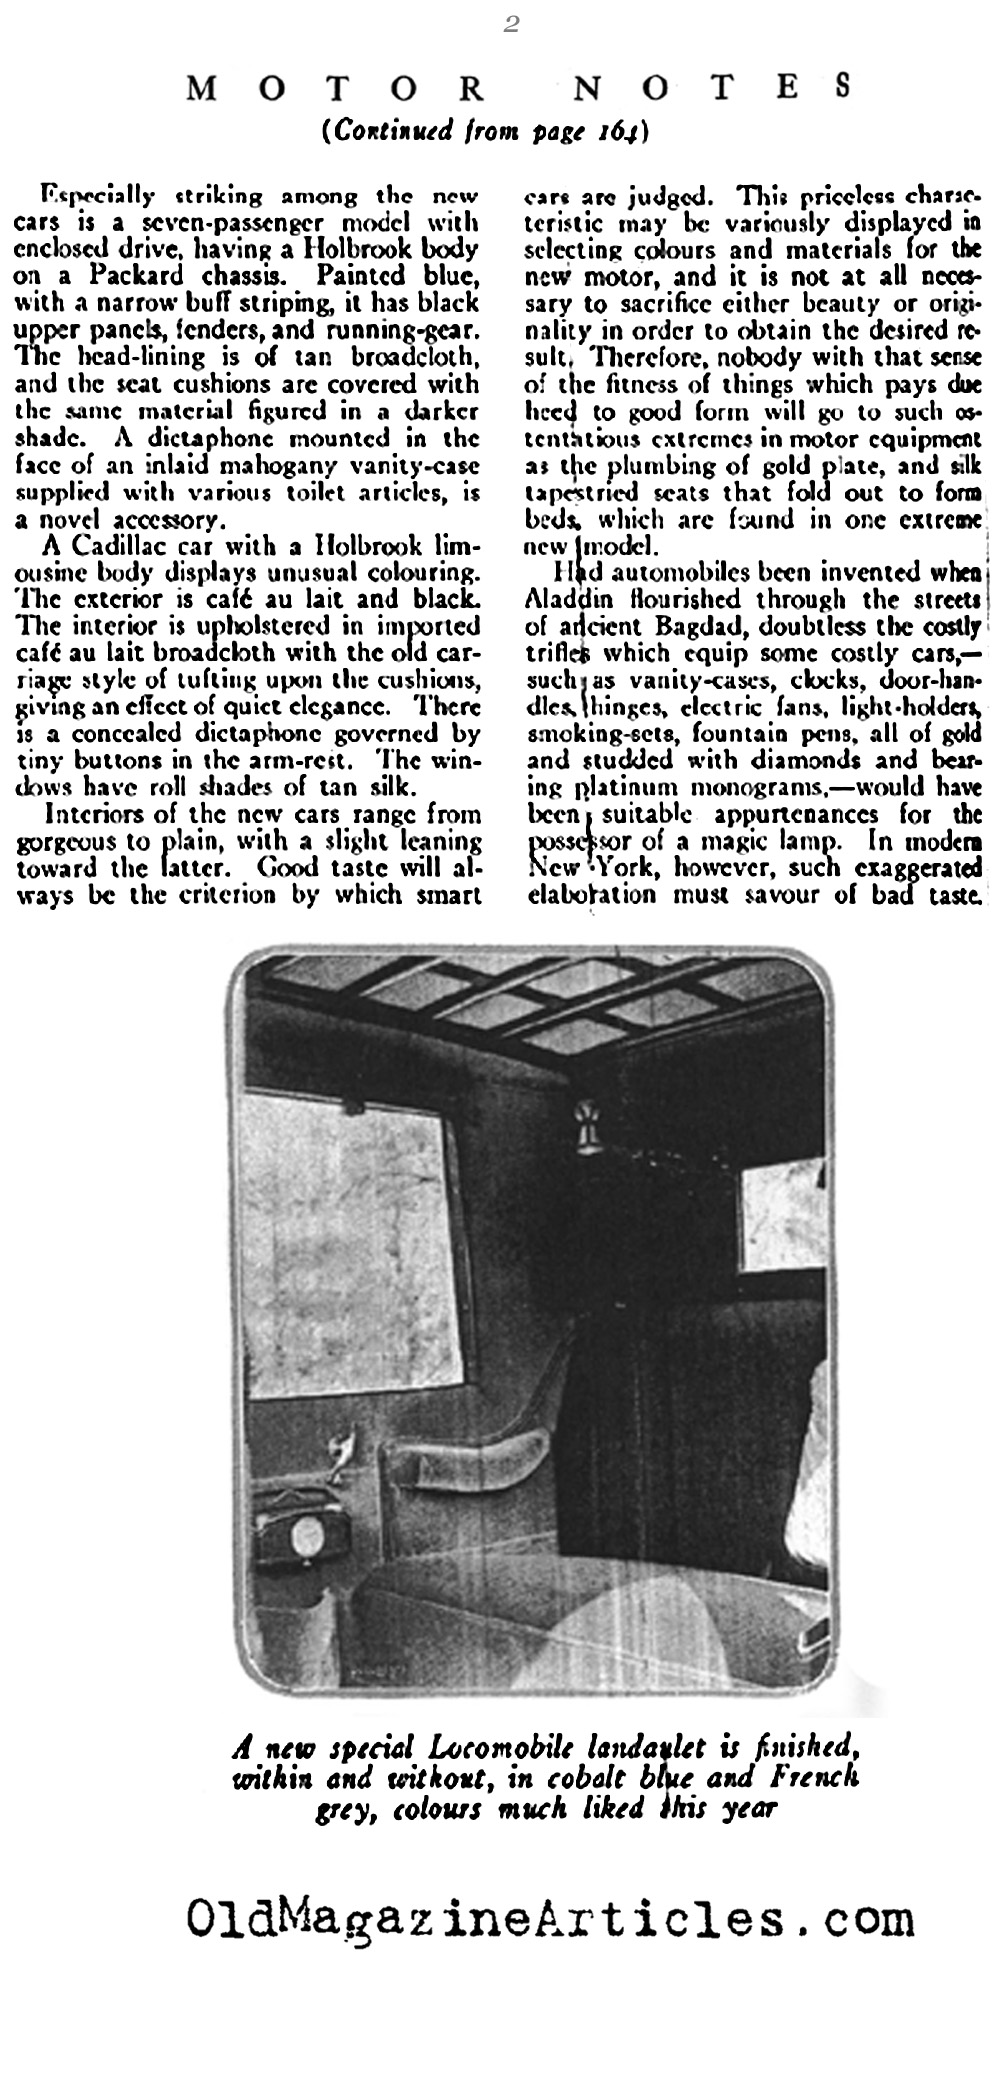 Upholstery in the Finest Luxury Cars of 1920 (Vogue Magazine, 1920)